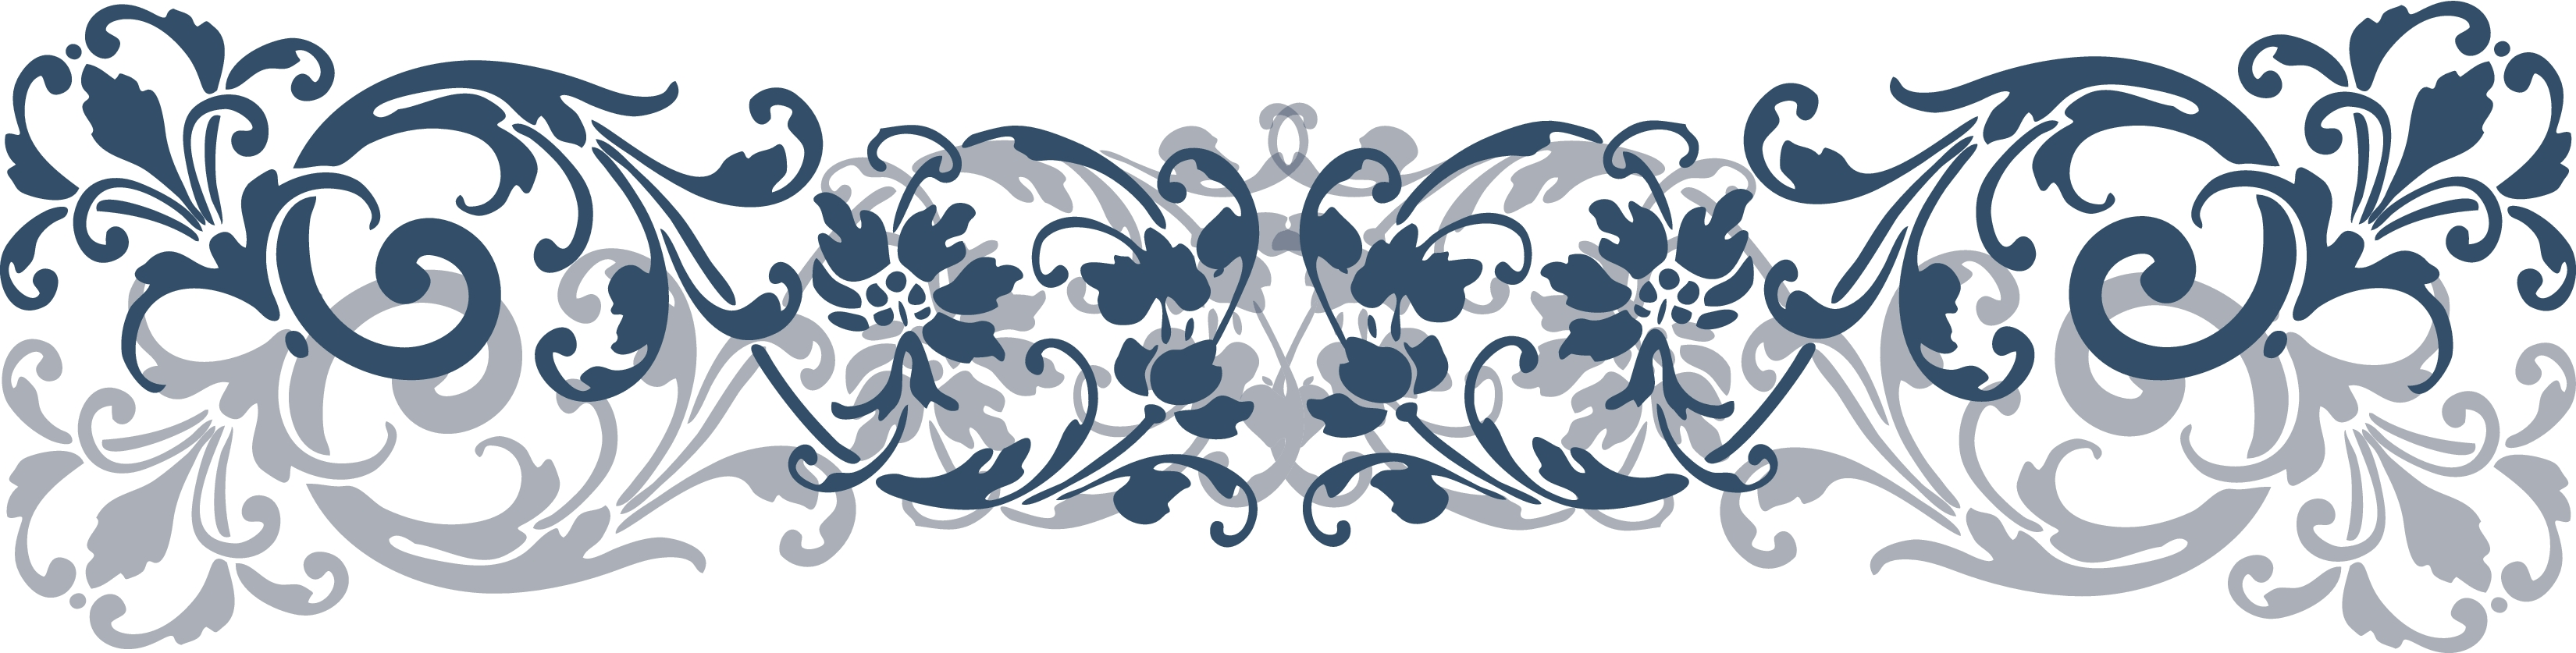 Floral Scroll Vector at GetDrawings.com.